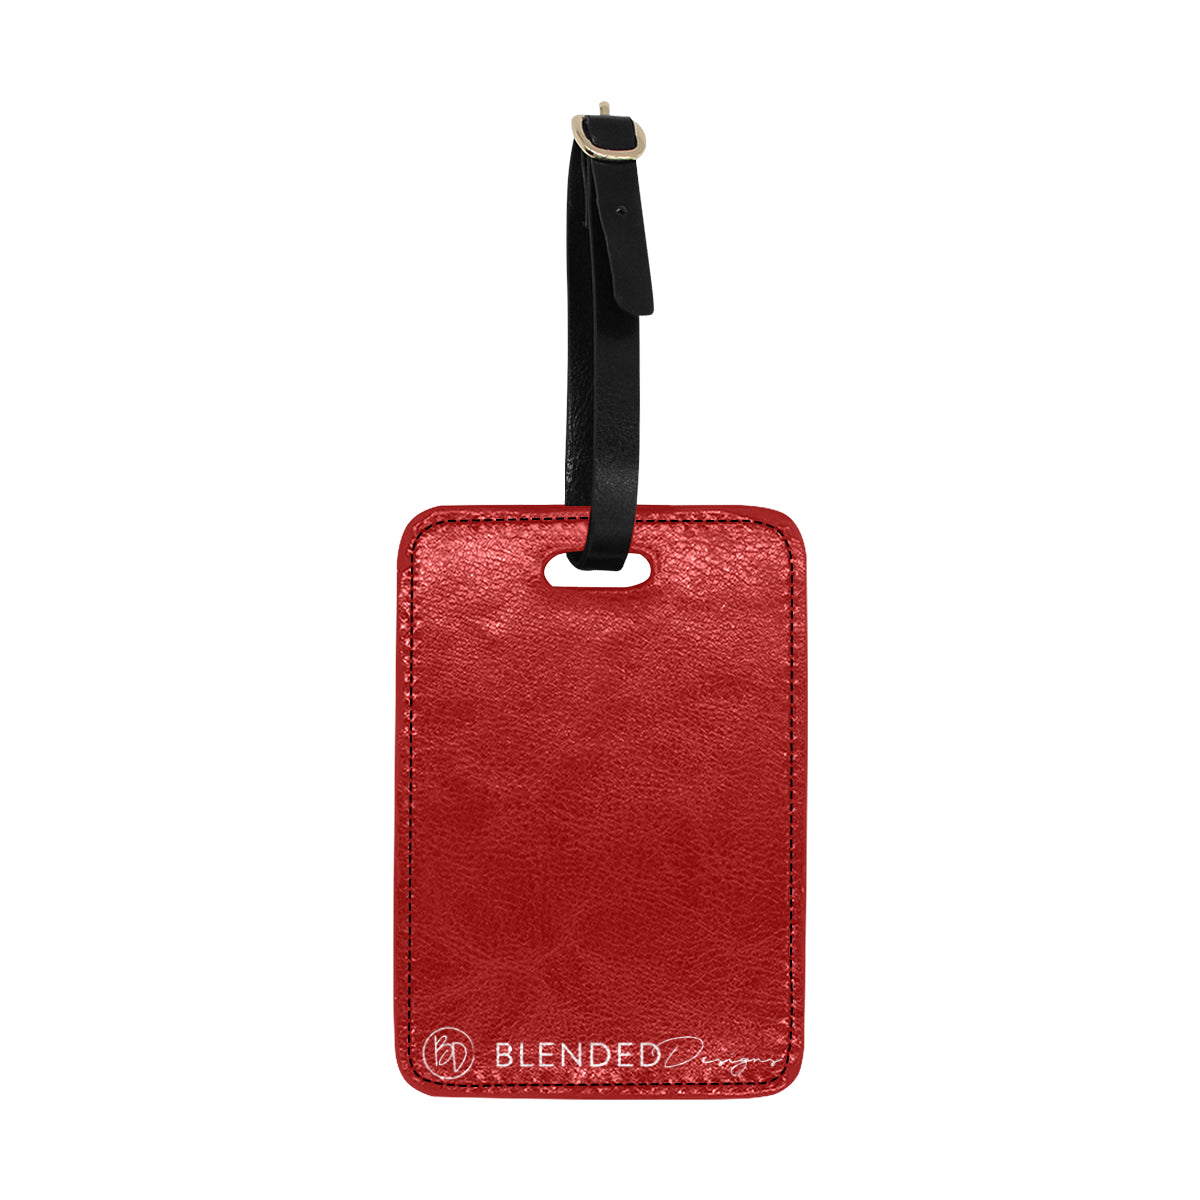 Diva Inspired Luggage Tag